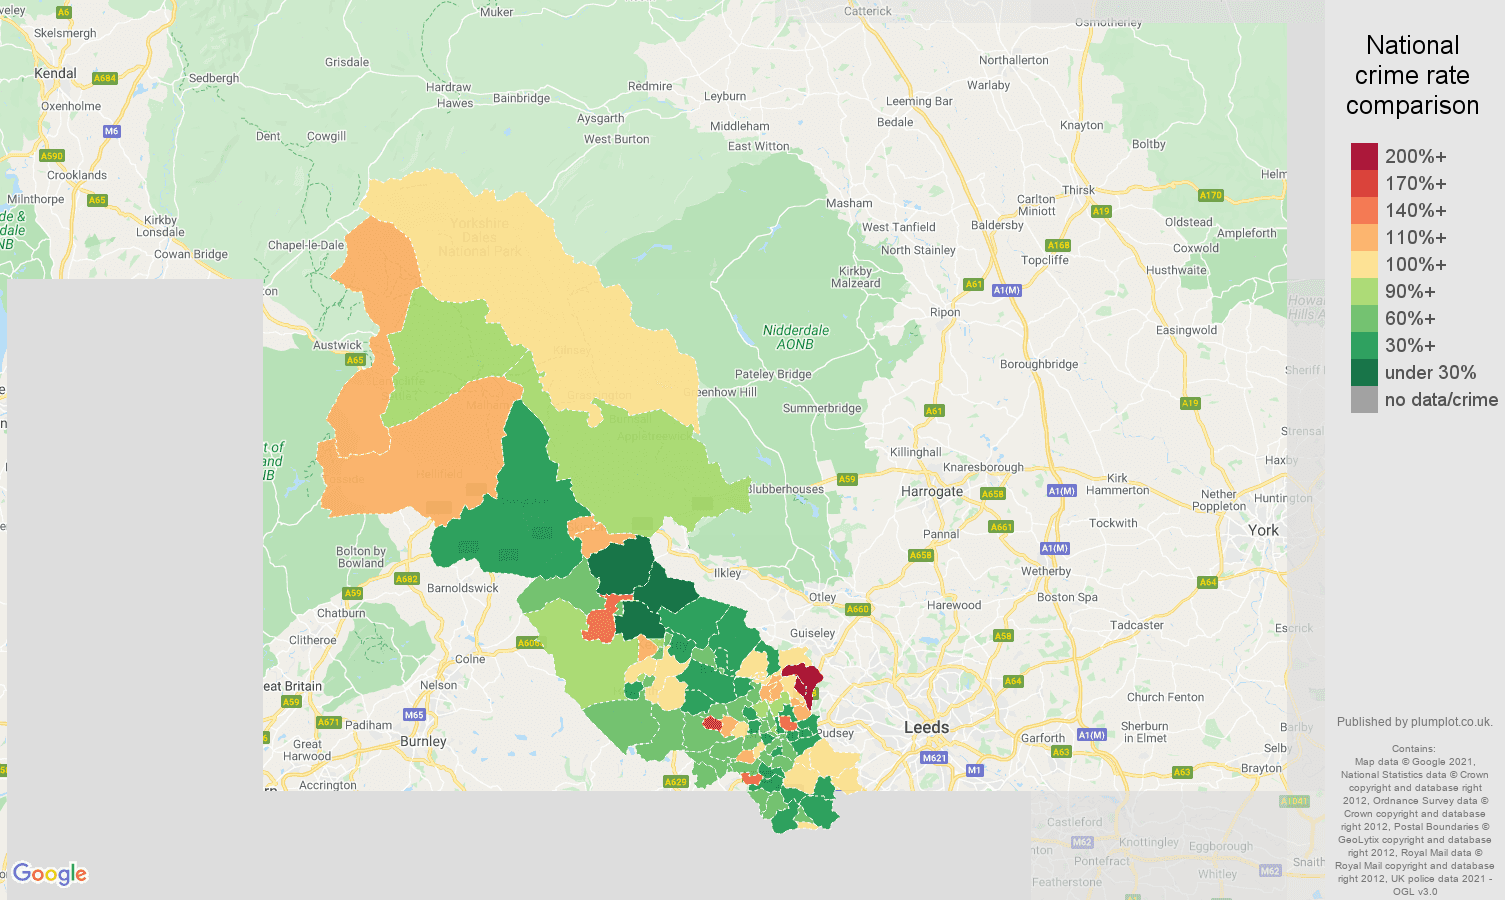 Bradford antisocial behaviour crime rate comparison map